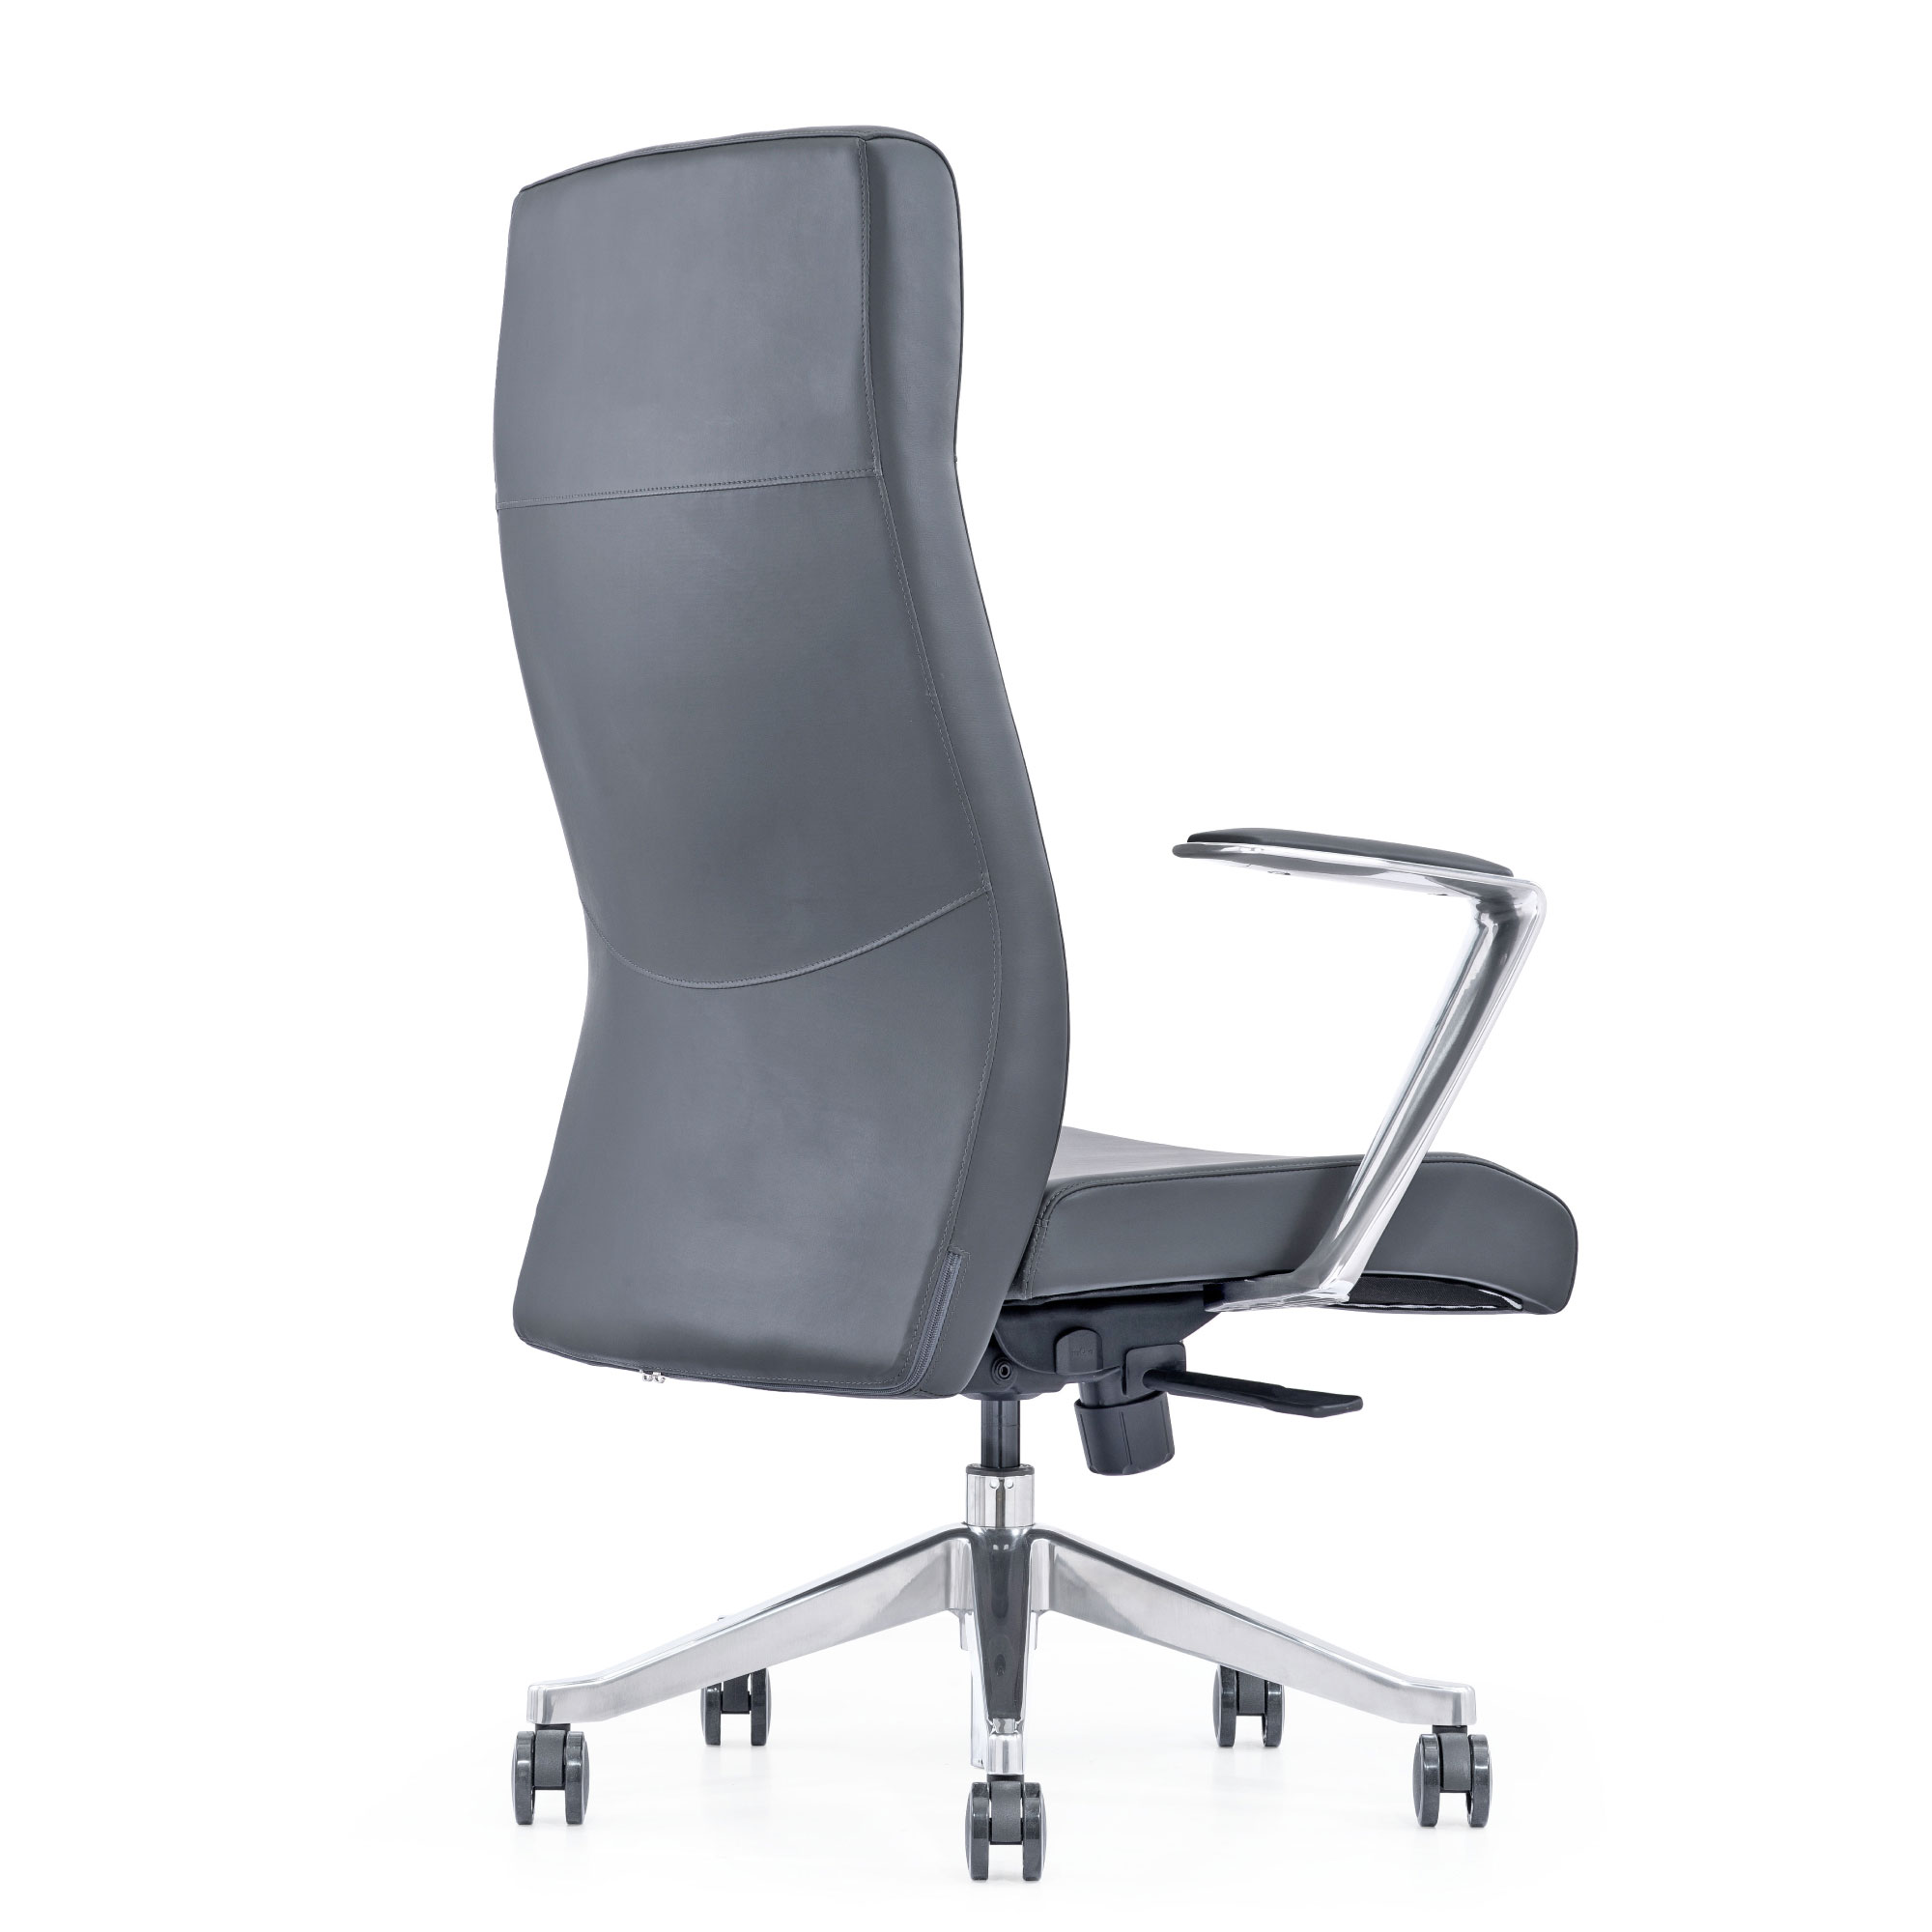 Leather Home Office Chair with arms, wheels, and adjustable height